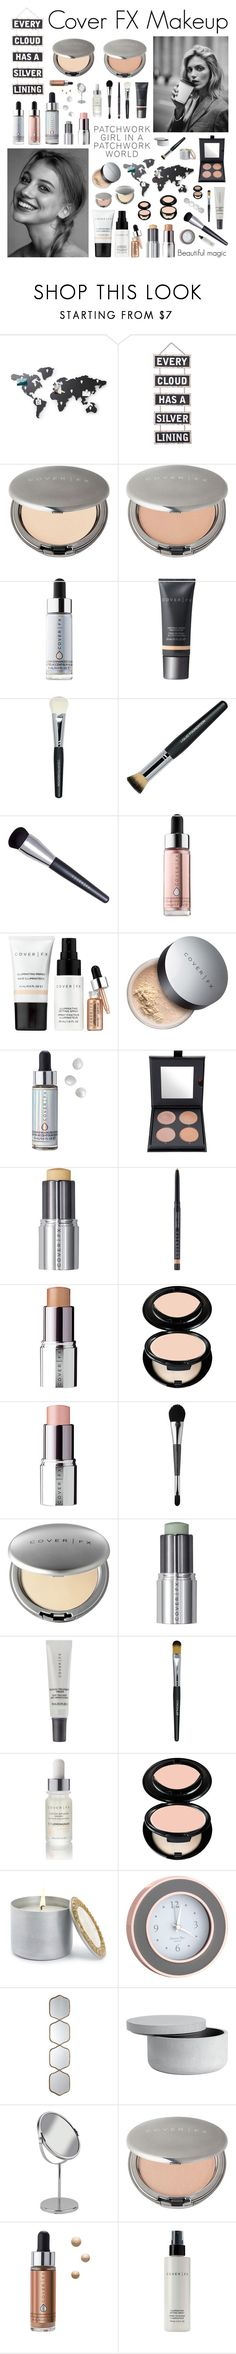 """""""Cover FX"""" by shangalairina ❤ liked on Polyvore featuring beauty, Anja, Umbra, Silver Lining, Cover FX, Marigold Artisans, Addison Ross and Uttermost"""